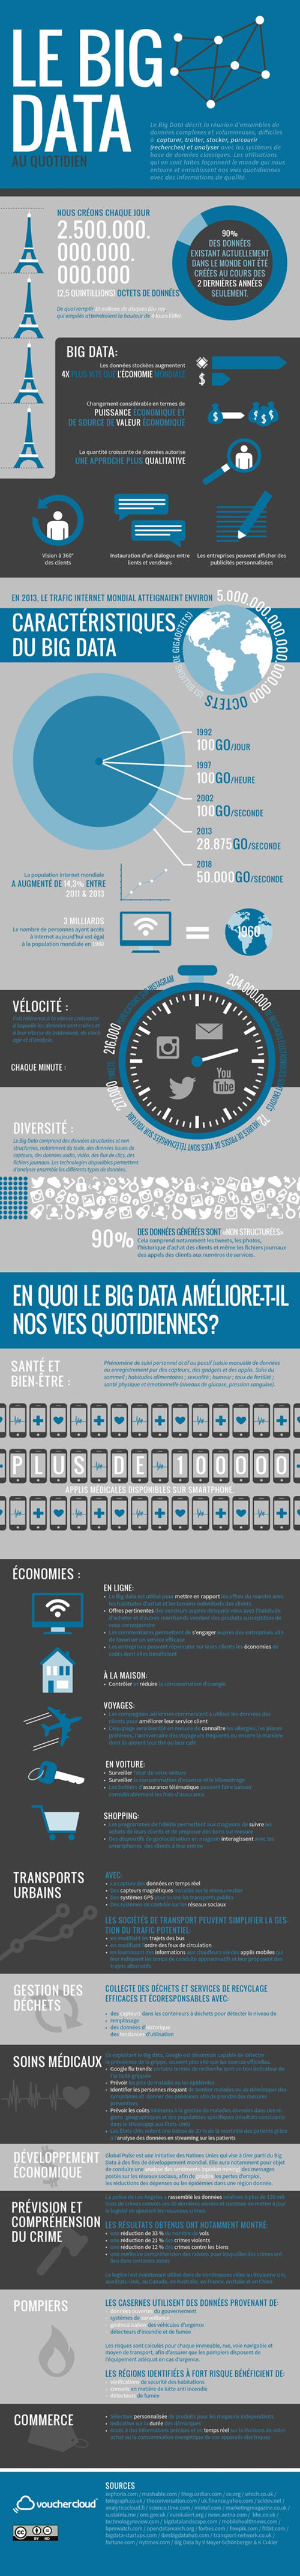 infographie-big-data-2016